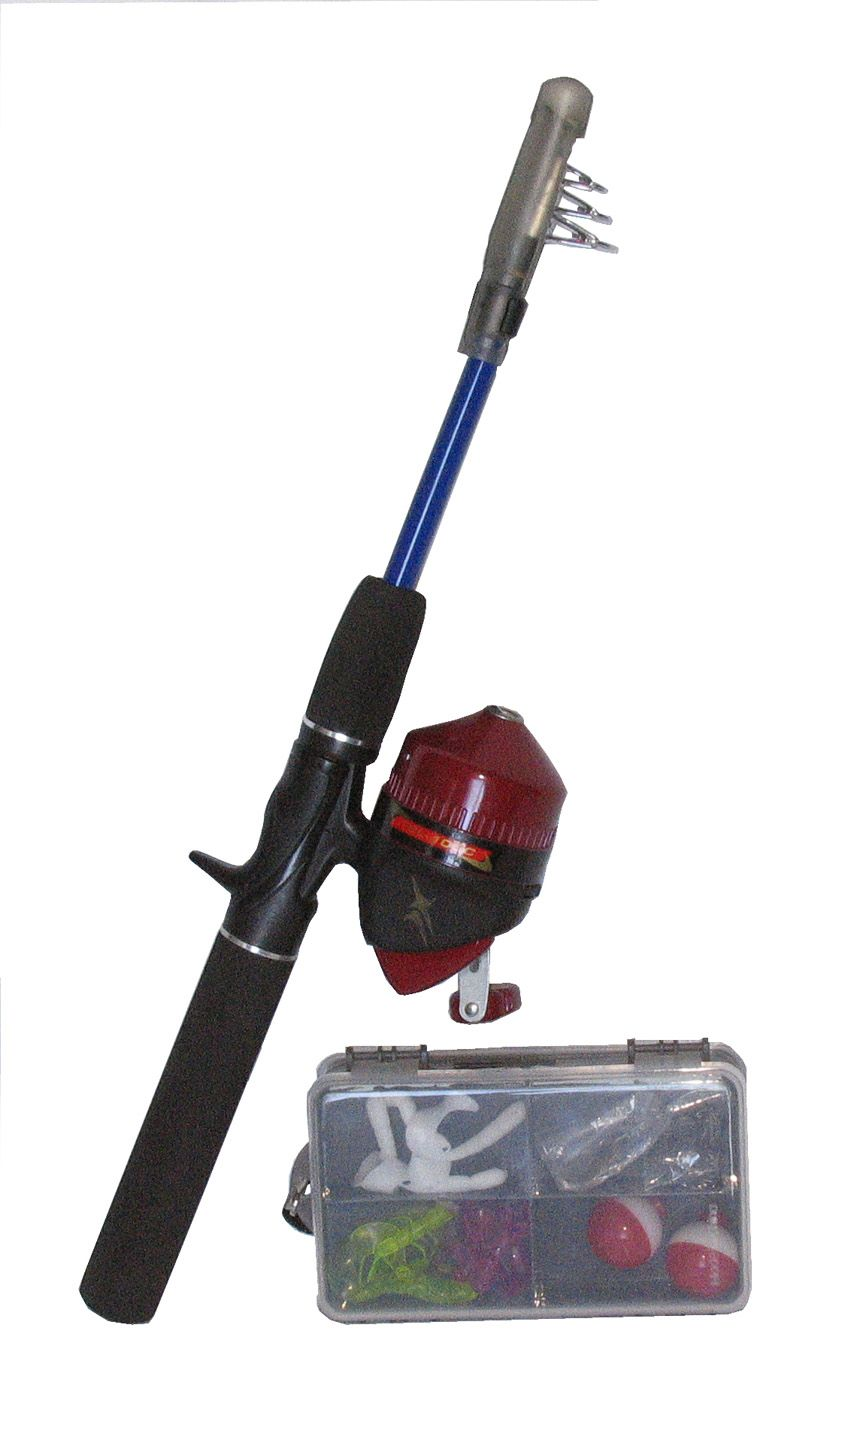 Best telescopic fishing rod for beginners and experts